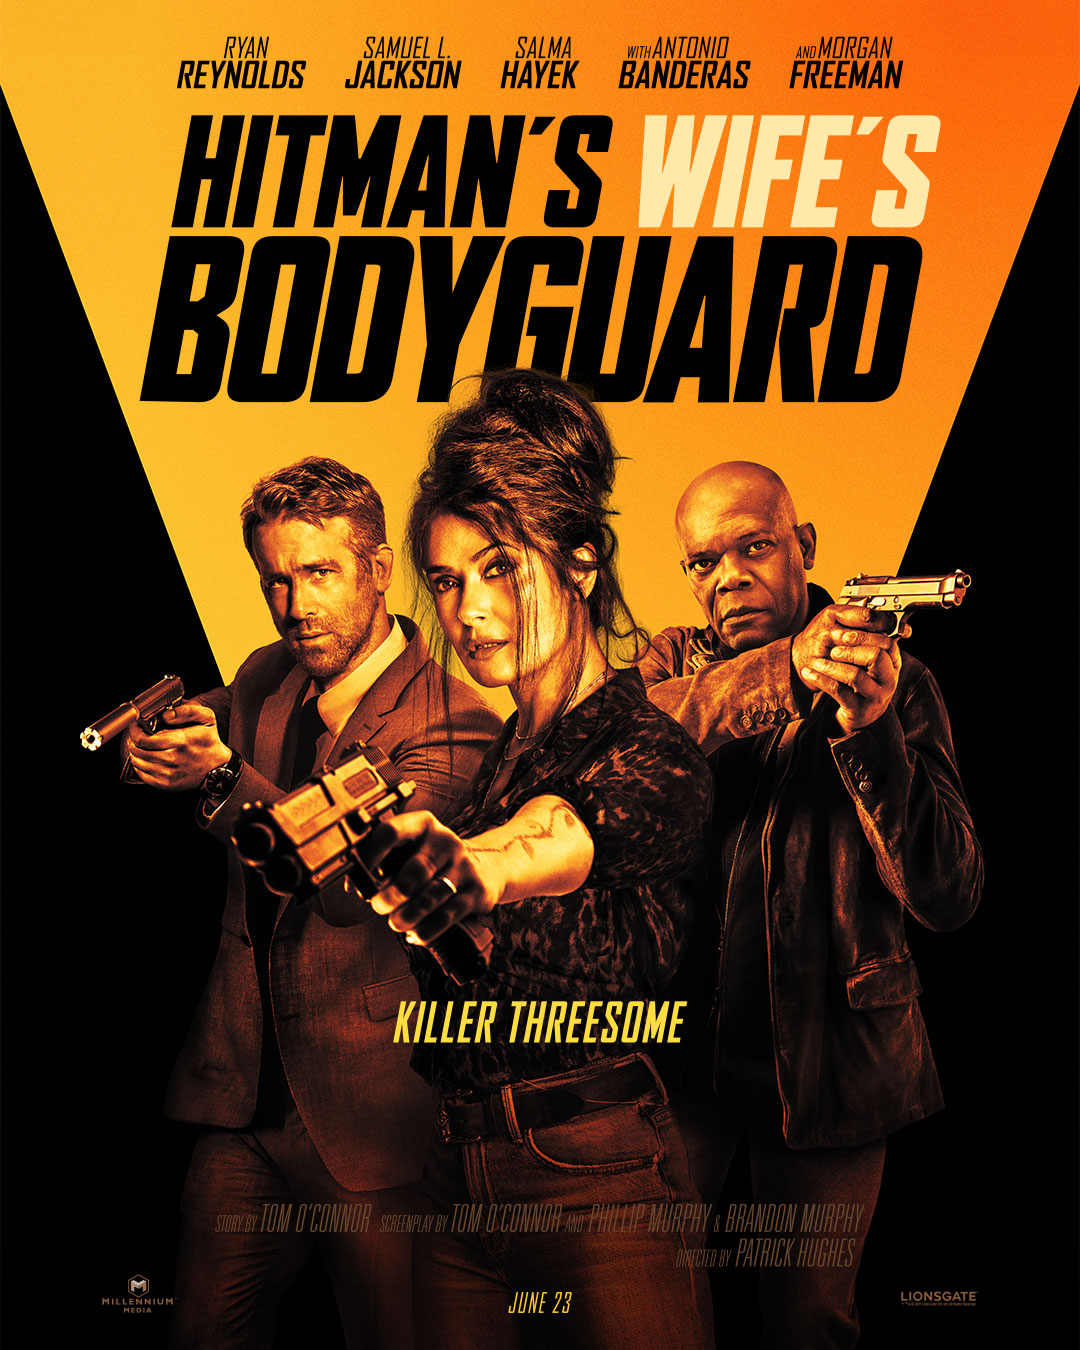 The Hitman's Wife's Bodyguard – Teaser poster